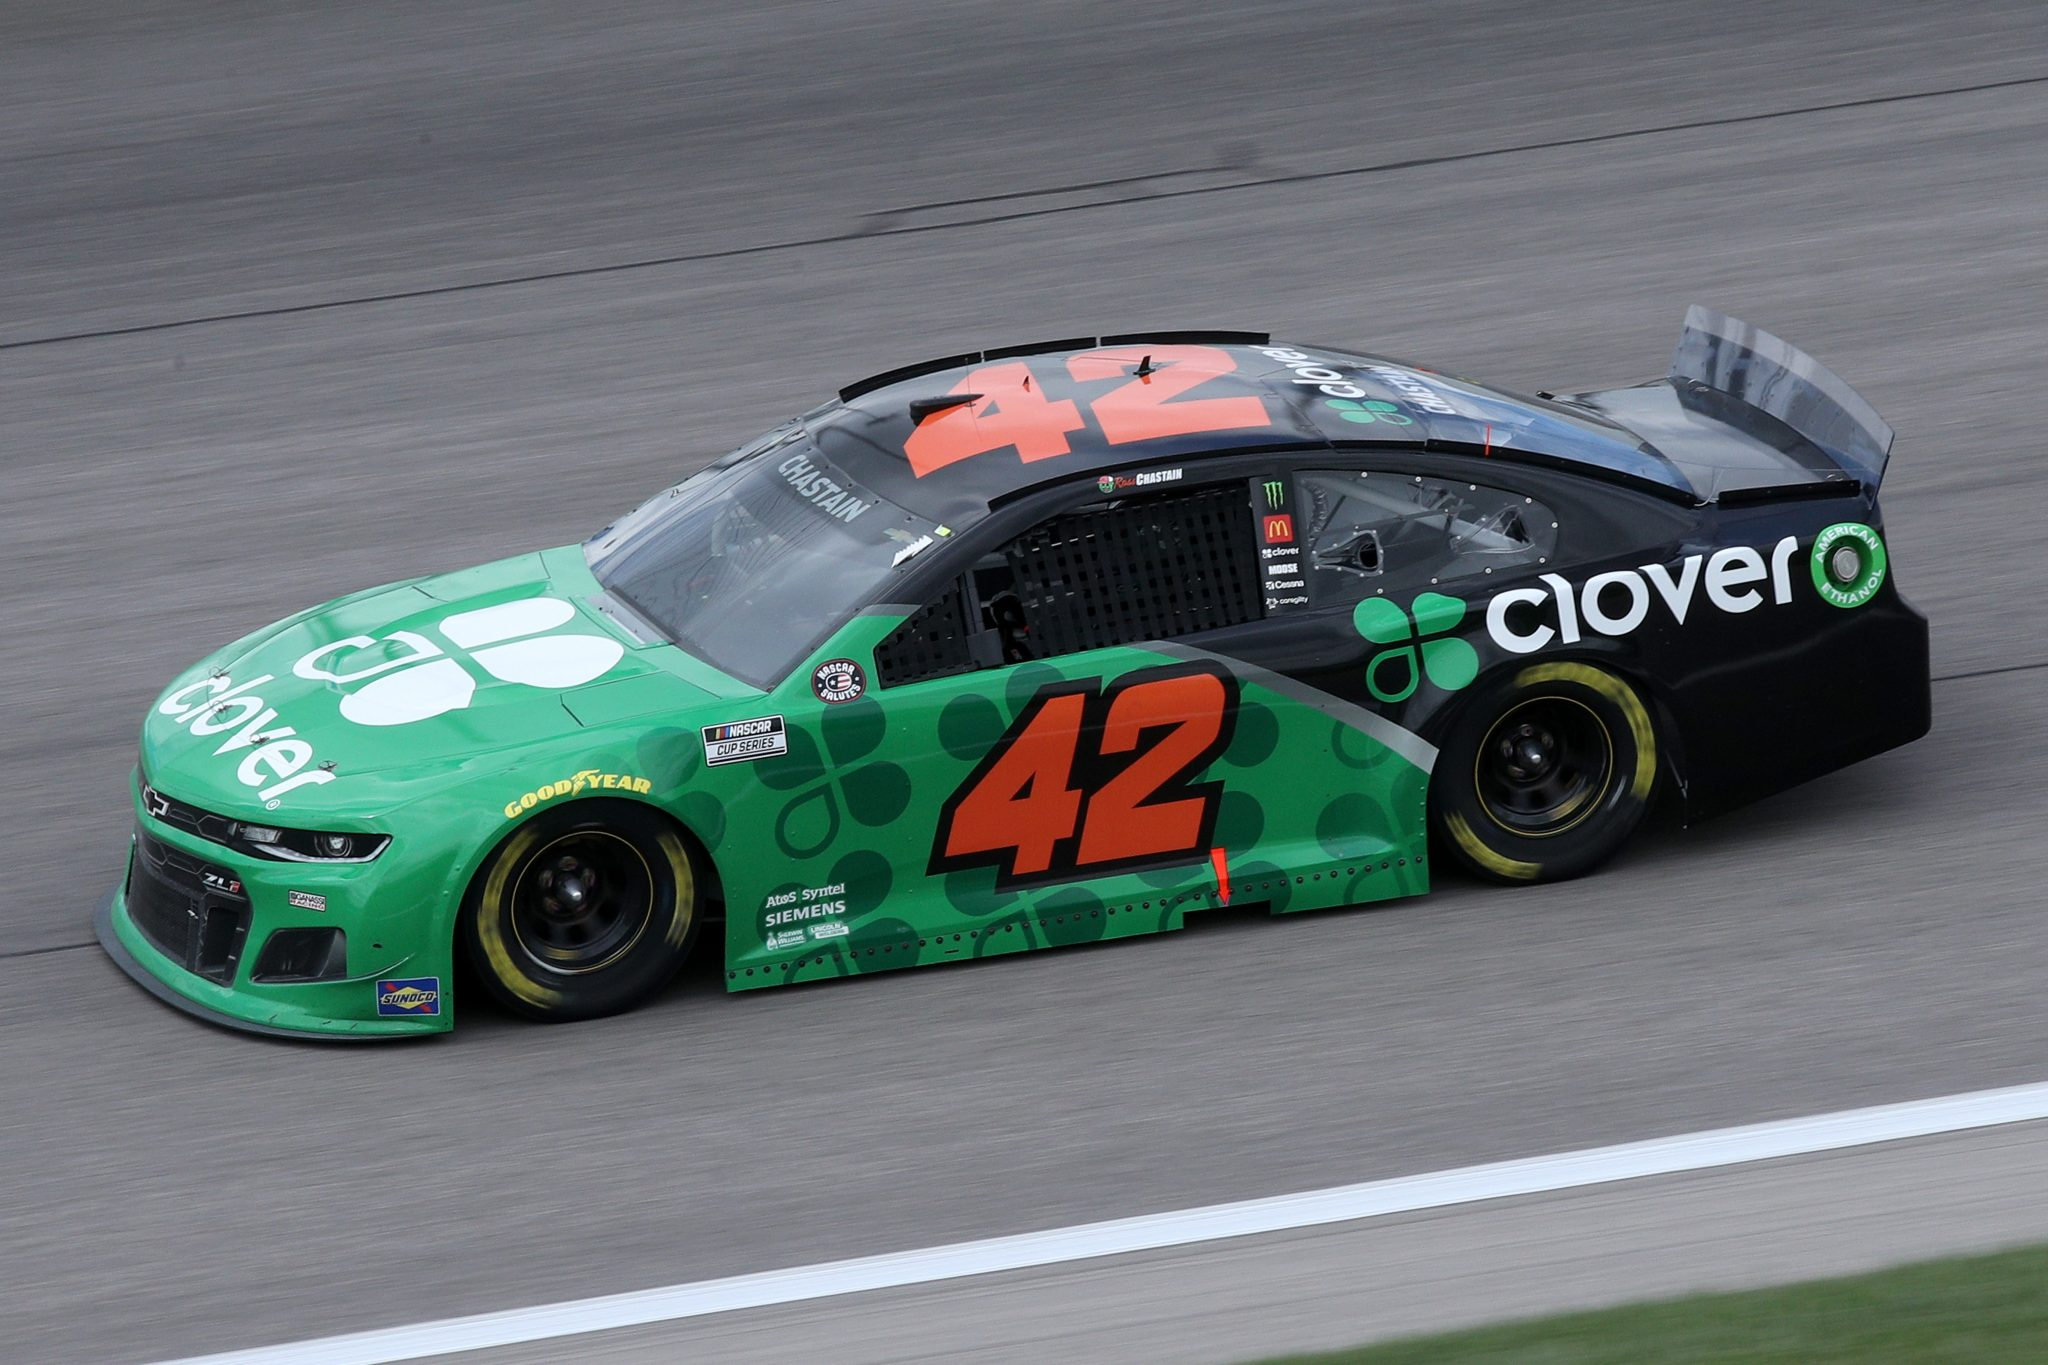 KANSAS CITY, KANSAS - MAY 02: Ross Chastain, driver of the #42 Clover Chevrolet, drives during the NASCAR Cup Series Buschy McBusch Race 400 at Kansas Speedway on May 02, 2021 in Kansas City, Kansas. (Photo by Sean Gardner/Getty Images) | Getty Images